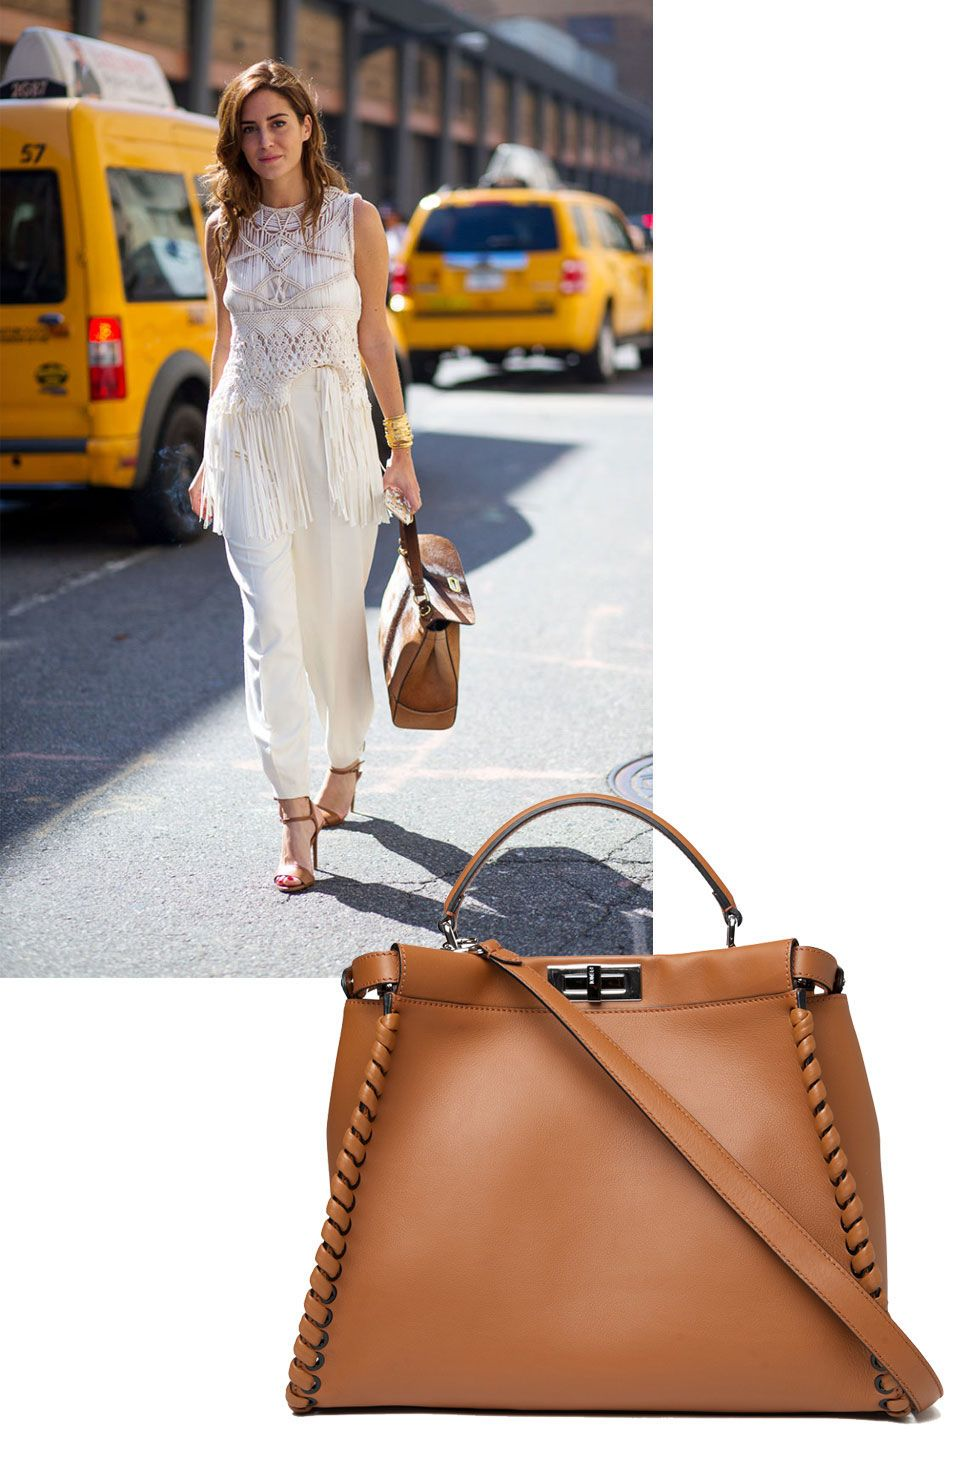 10 designer bags every woman should own | fashion articles, bag